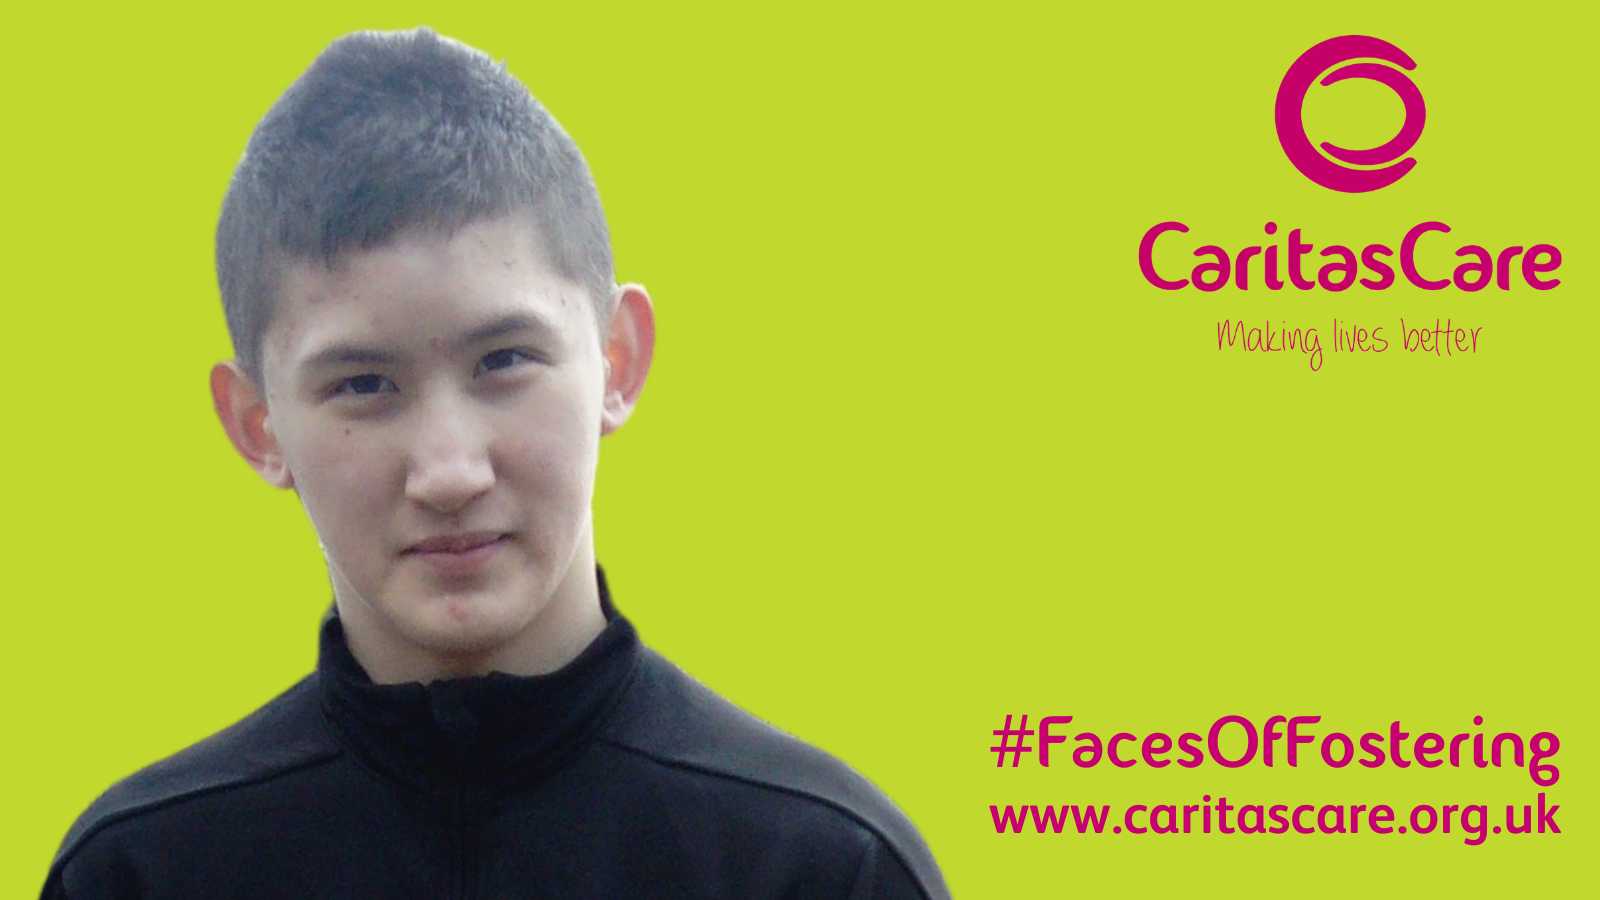 #FacesOfFostering - Byron's journey in Foster Care (in his own words)